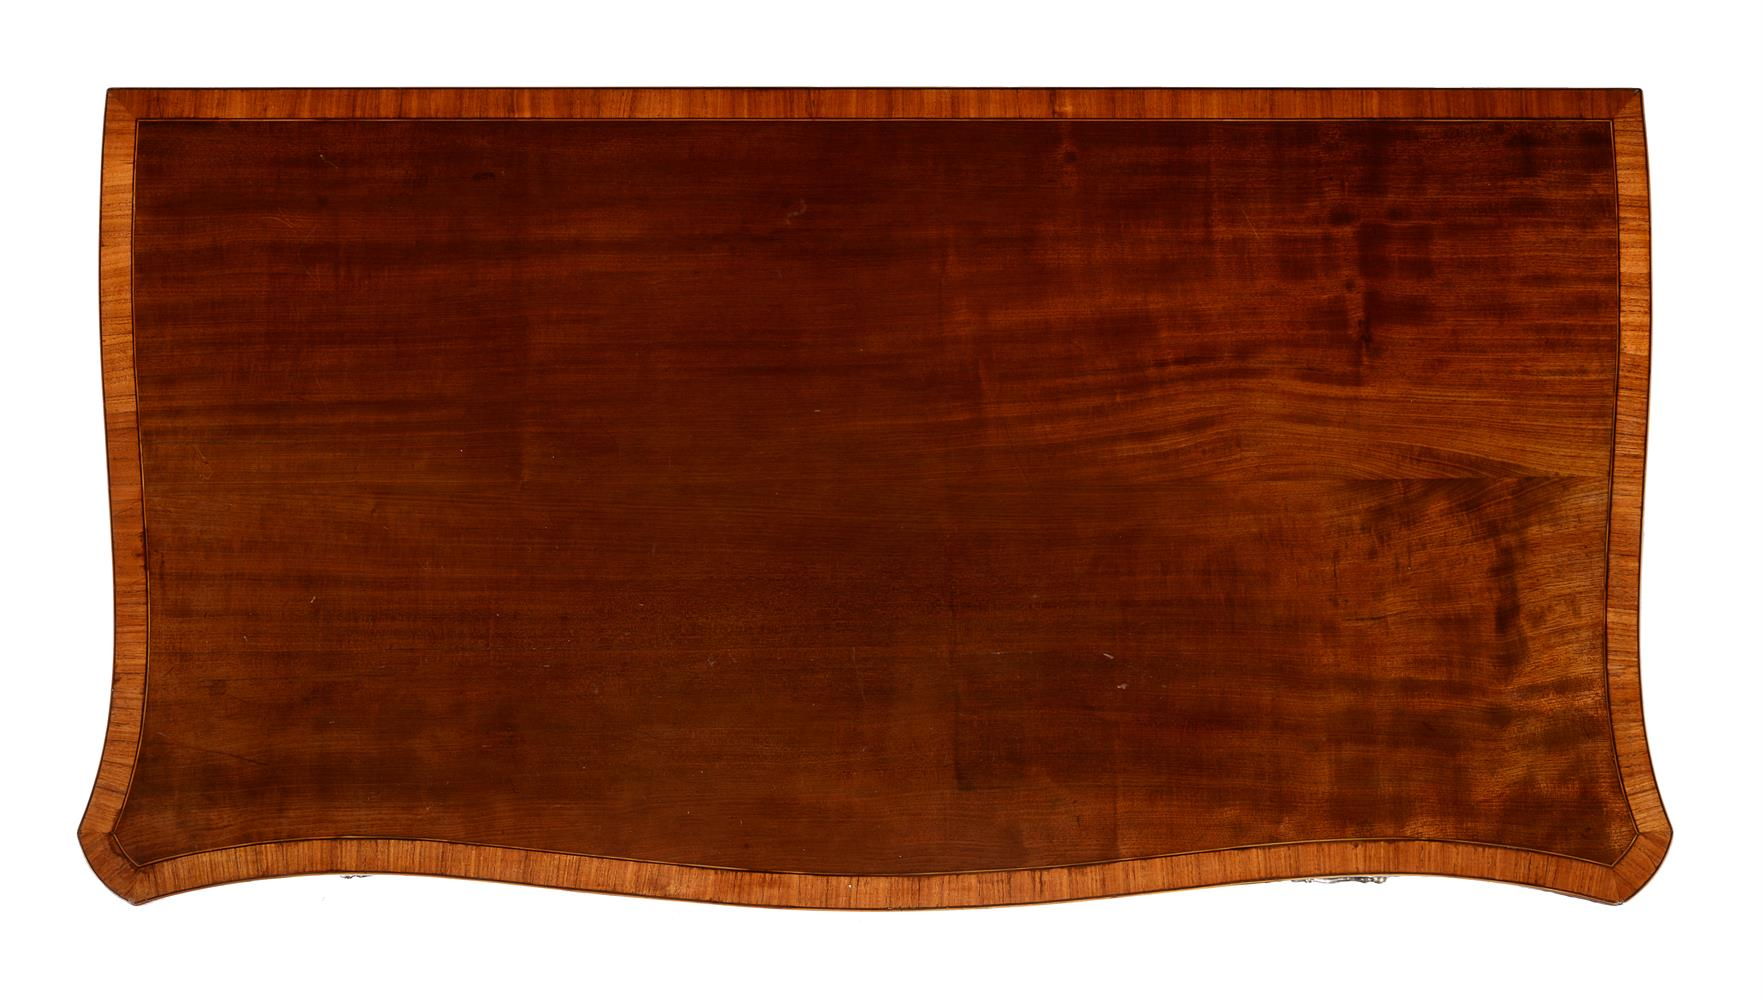 Y A GEORGE III MAHOGANY AND TULIPWOOD CROSSBANDED DRESSING TABLE, CIRCA 1785 - Image 2 of 4